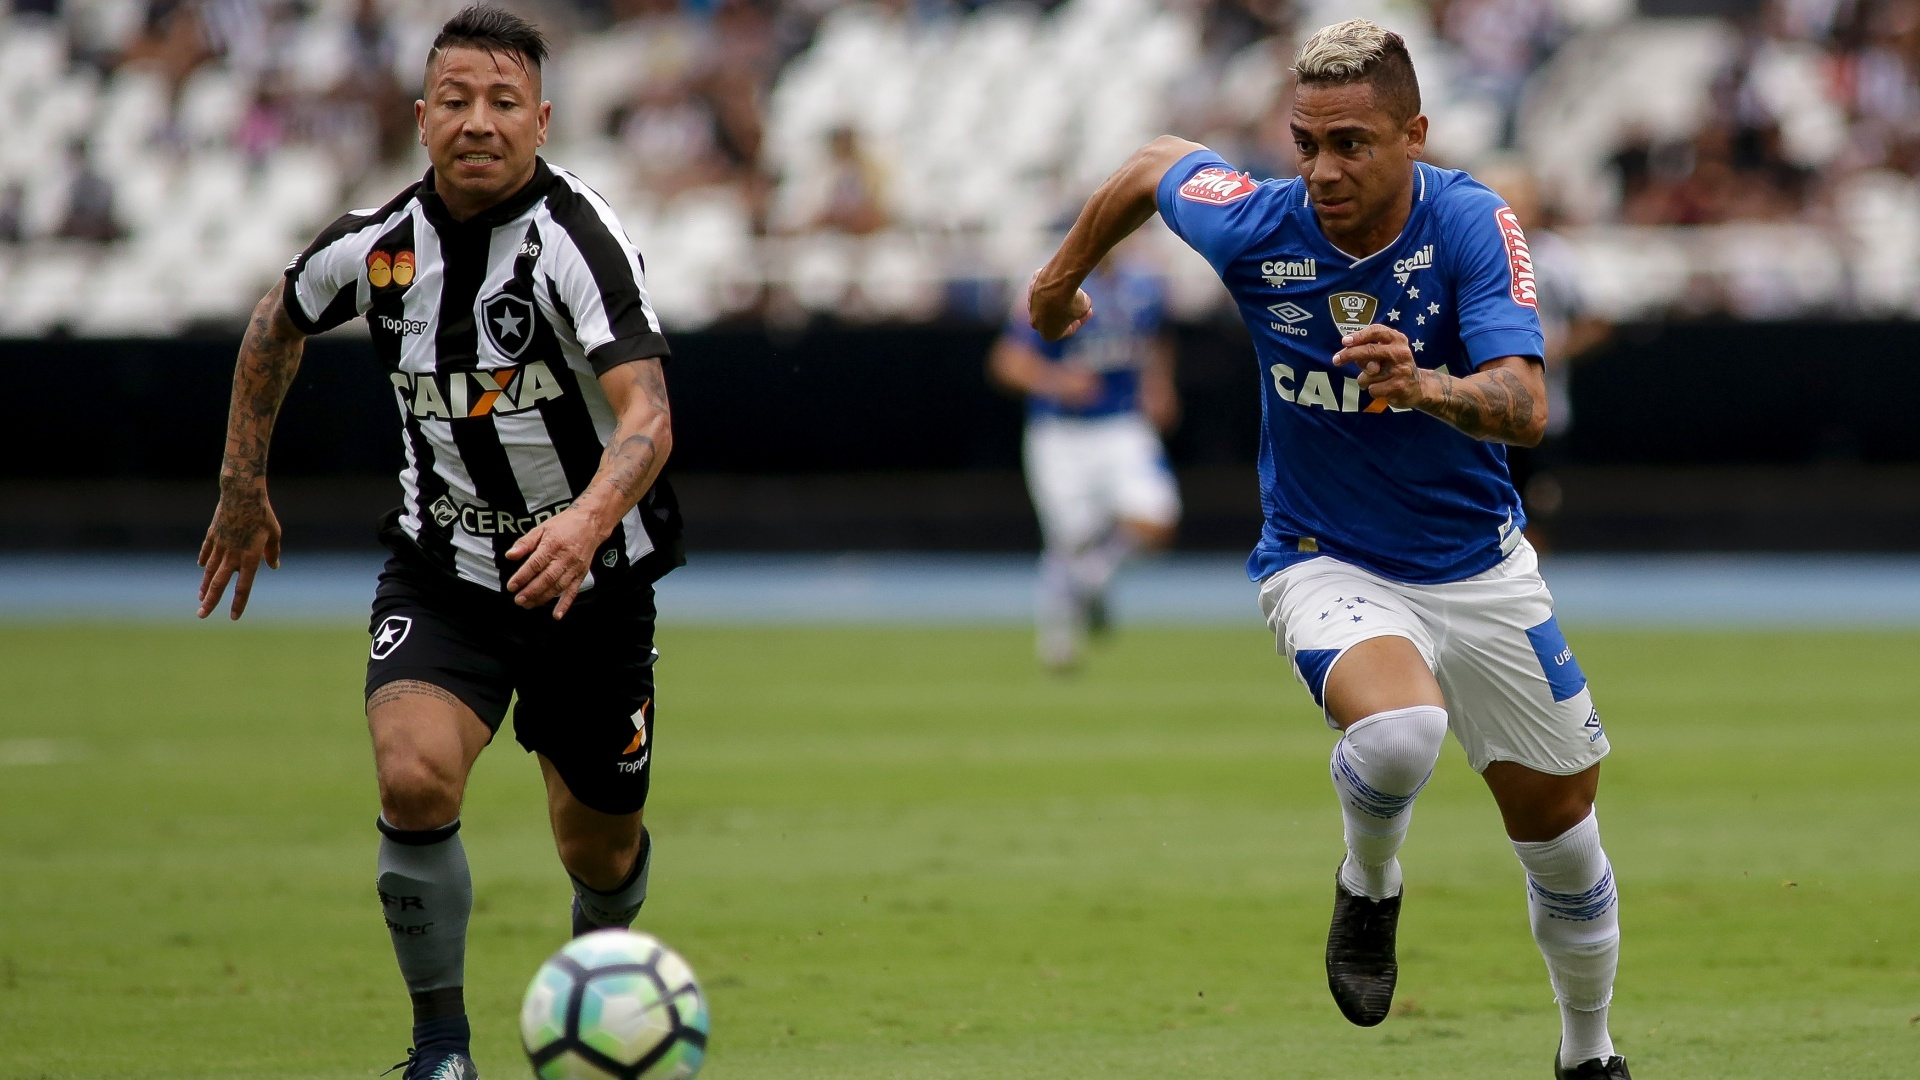 Leonardo Valencia, do Botafogo, disputa bola com Bryan, do Cruzeiro